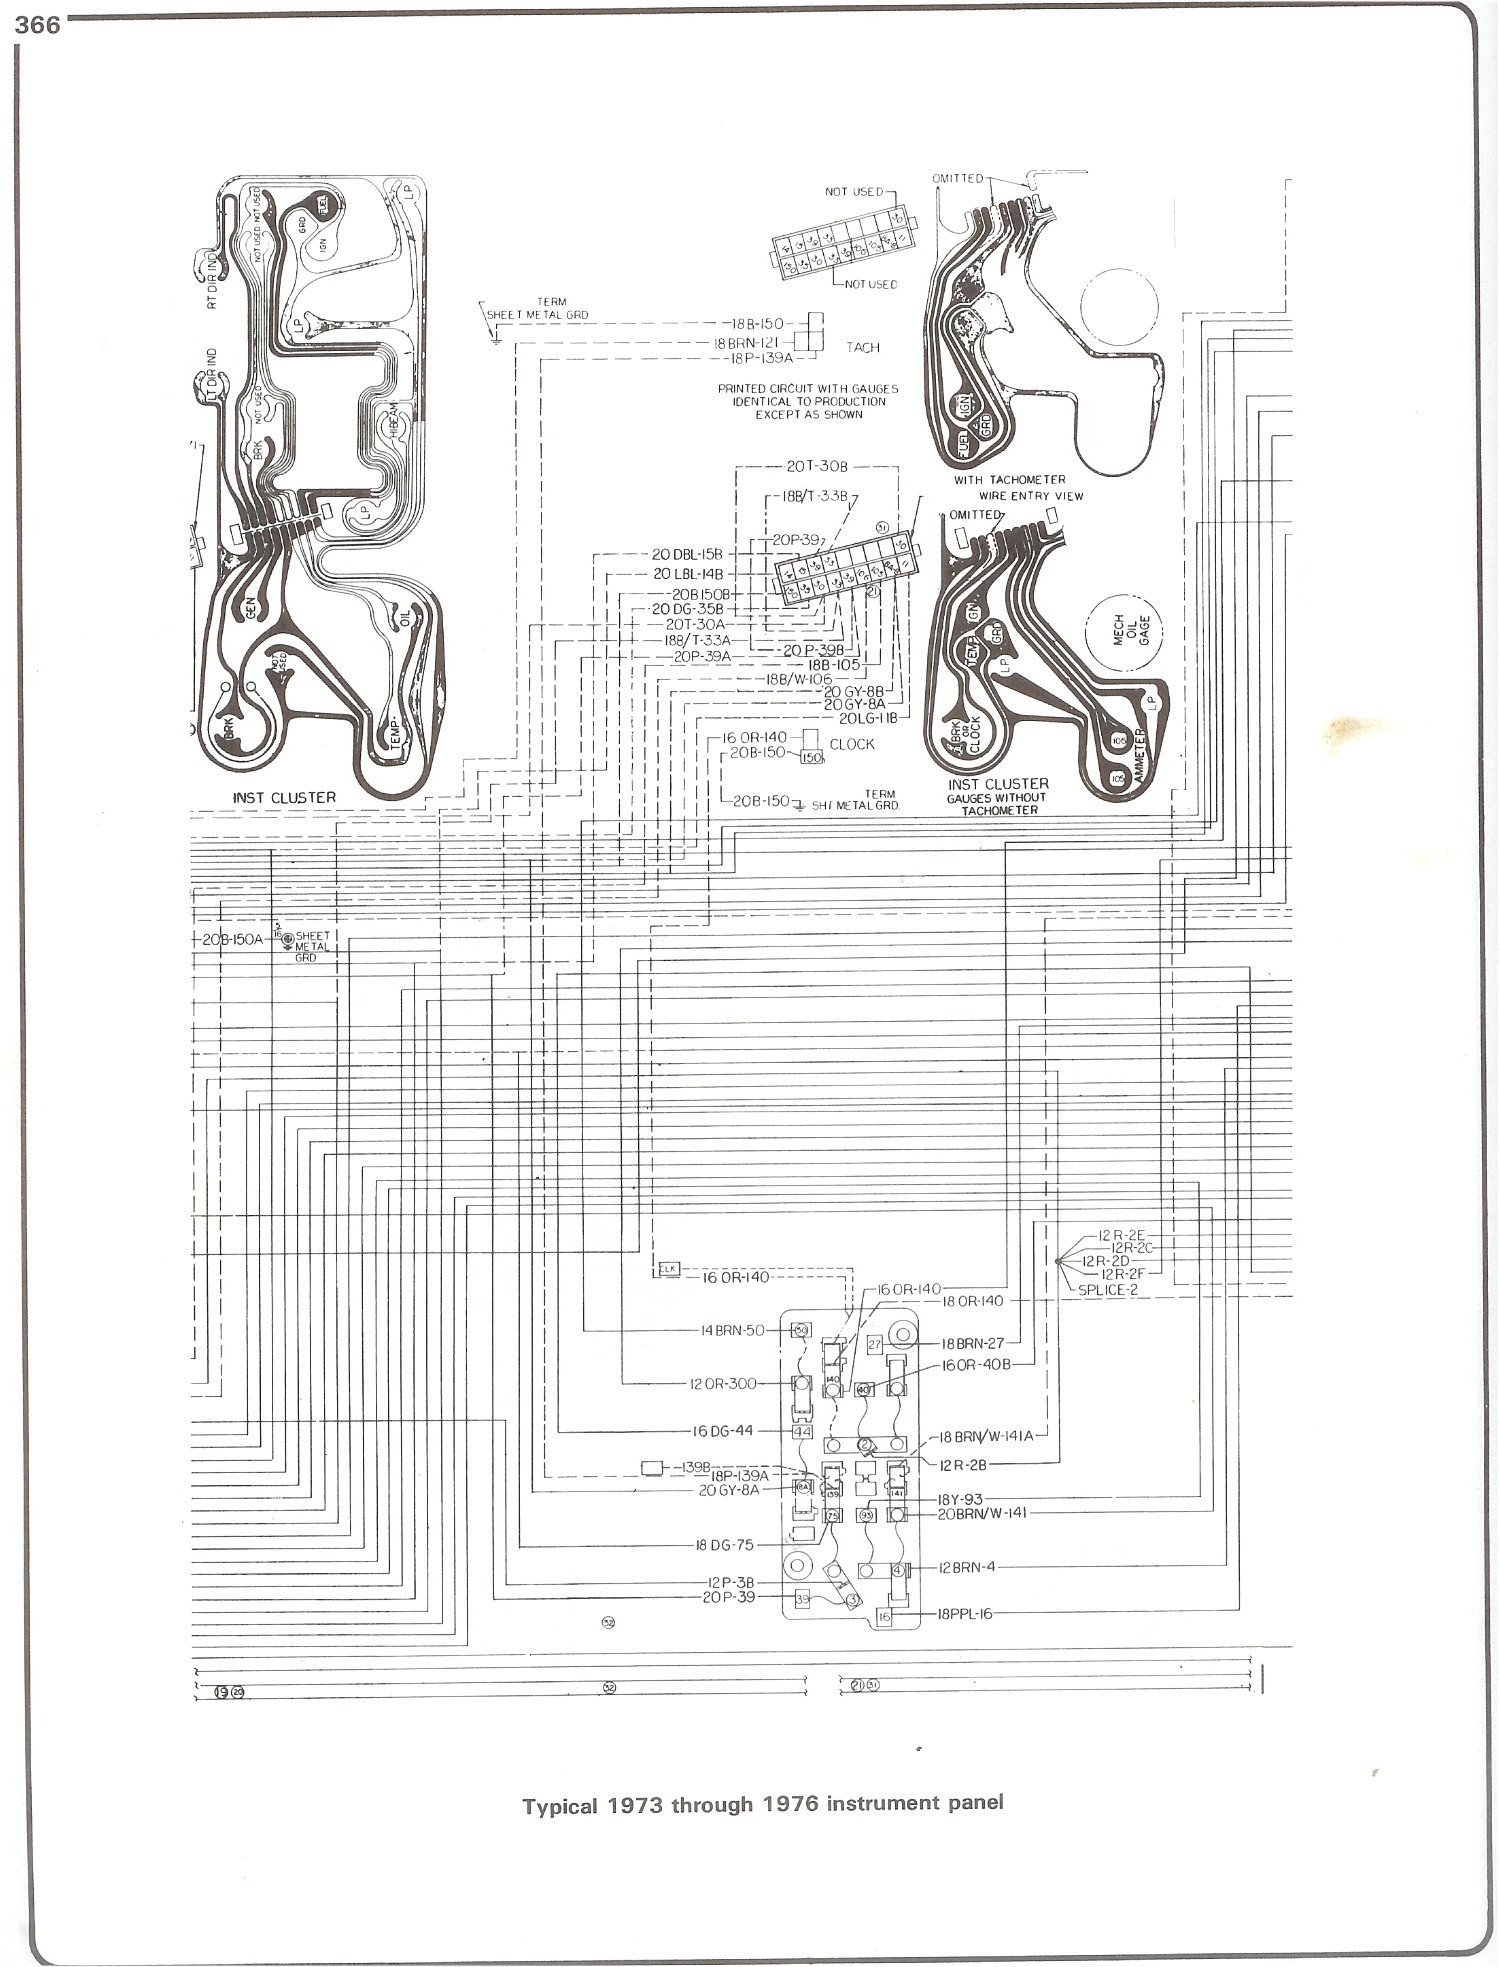 2018 Chevy 1/2 Ton Unique Warn Winch Wiring Diagram 4 Solenoid - Warn Winch Wiring Diagram 4 Solenoid